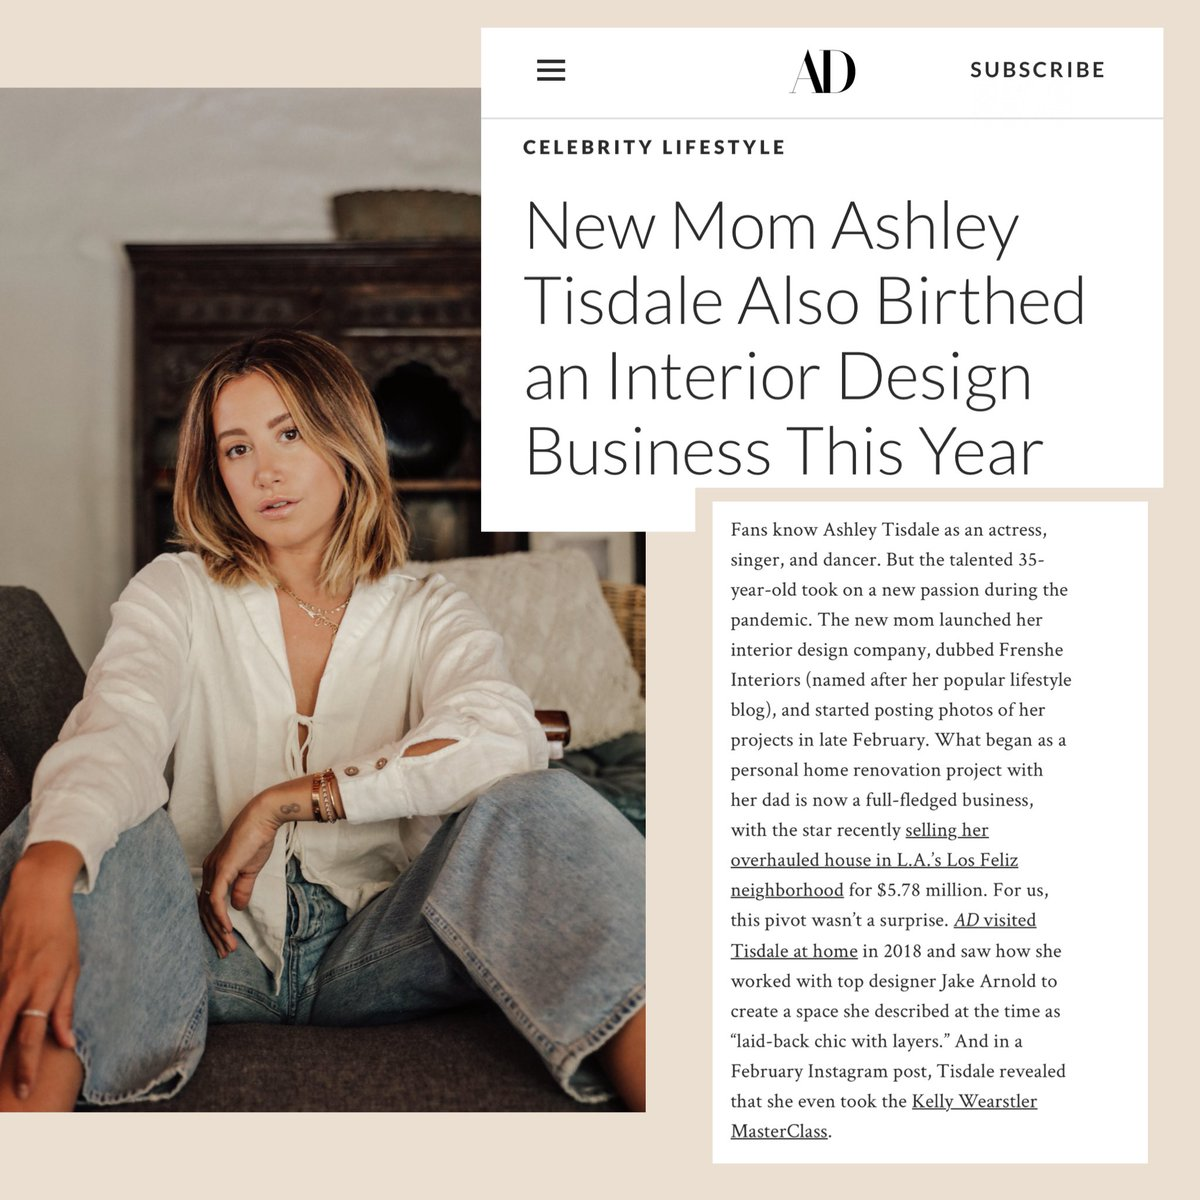 Got asked to be interviewed by @ArchDigest on my new endeavor #FrensheInteriors. WILD!! Link below if you wanna check it out!